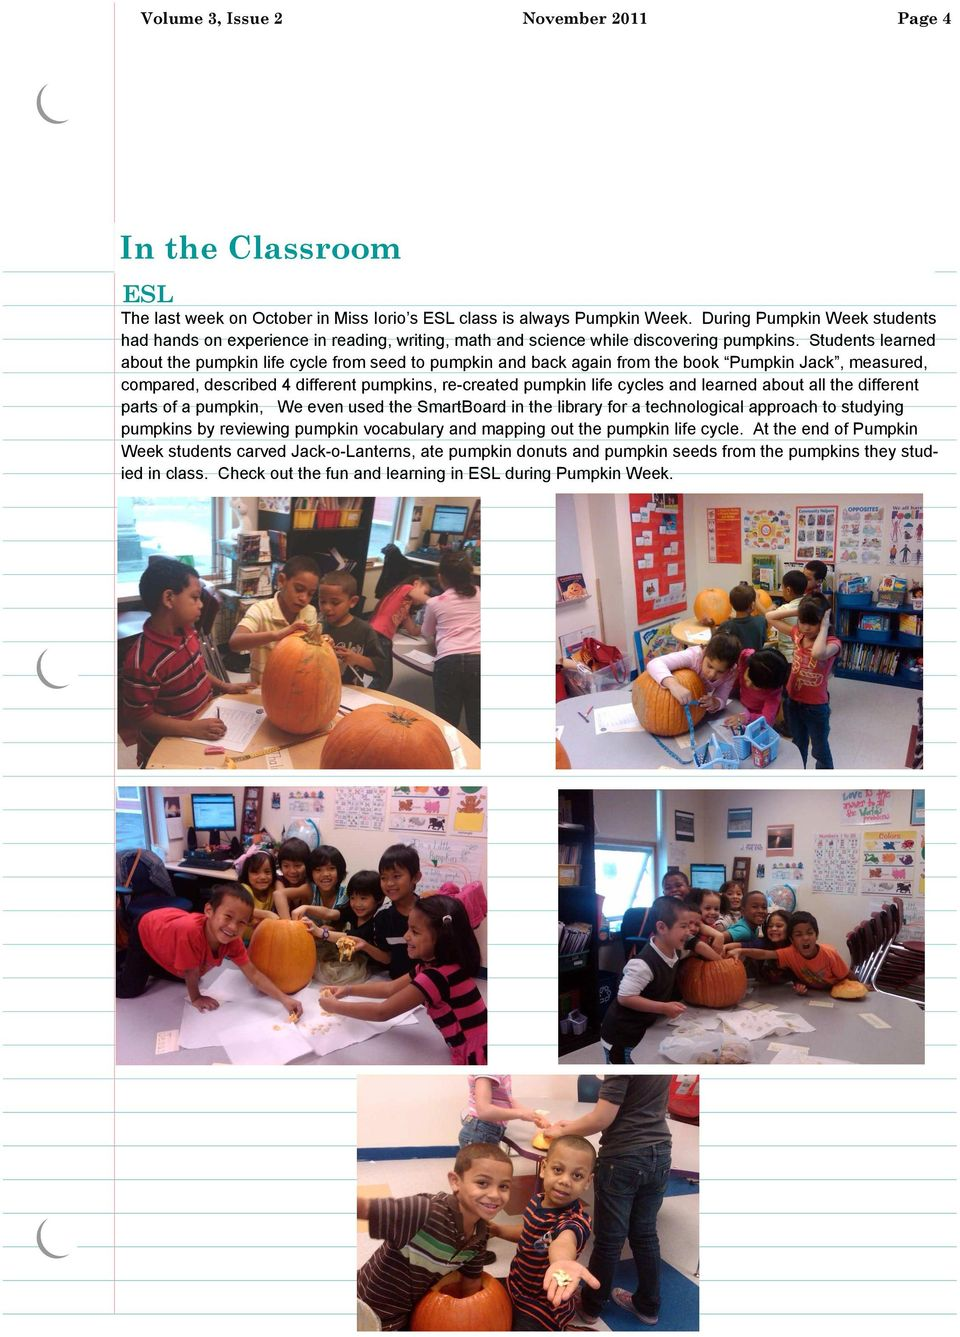 Students learned about the pumpkin life cycle from seed to pumpkin and back again from the book Pumpkin Jack, measured, compared, described 4 different pumpkins, re-created pumpkin life cycles and